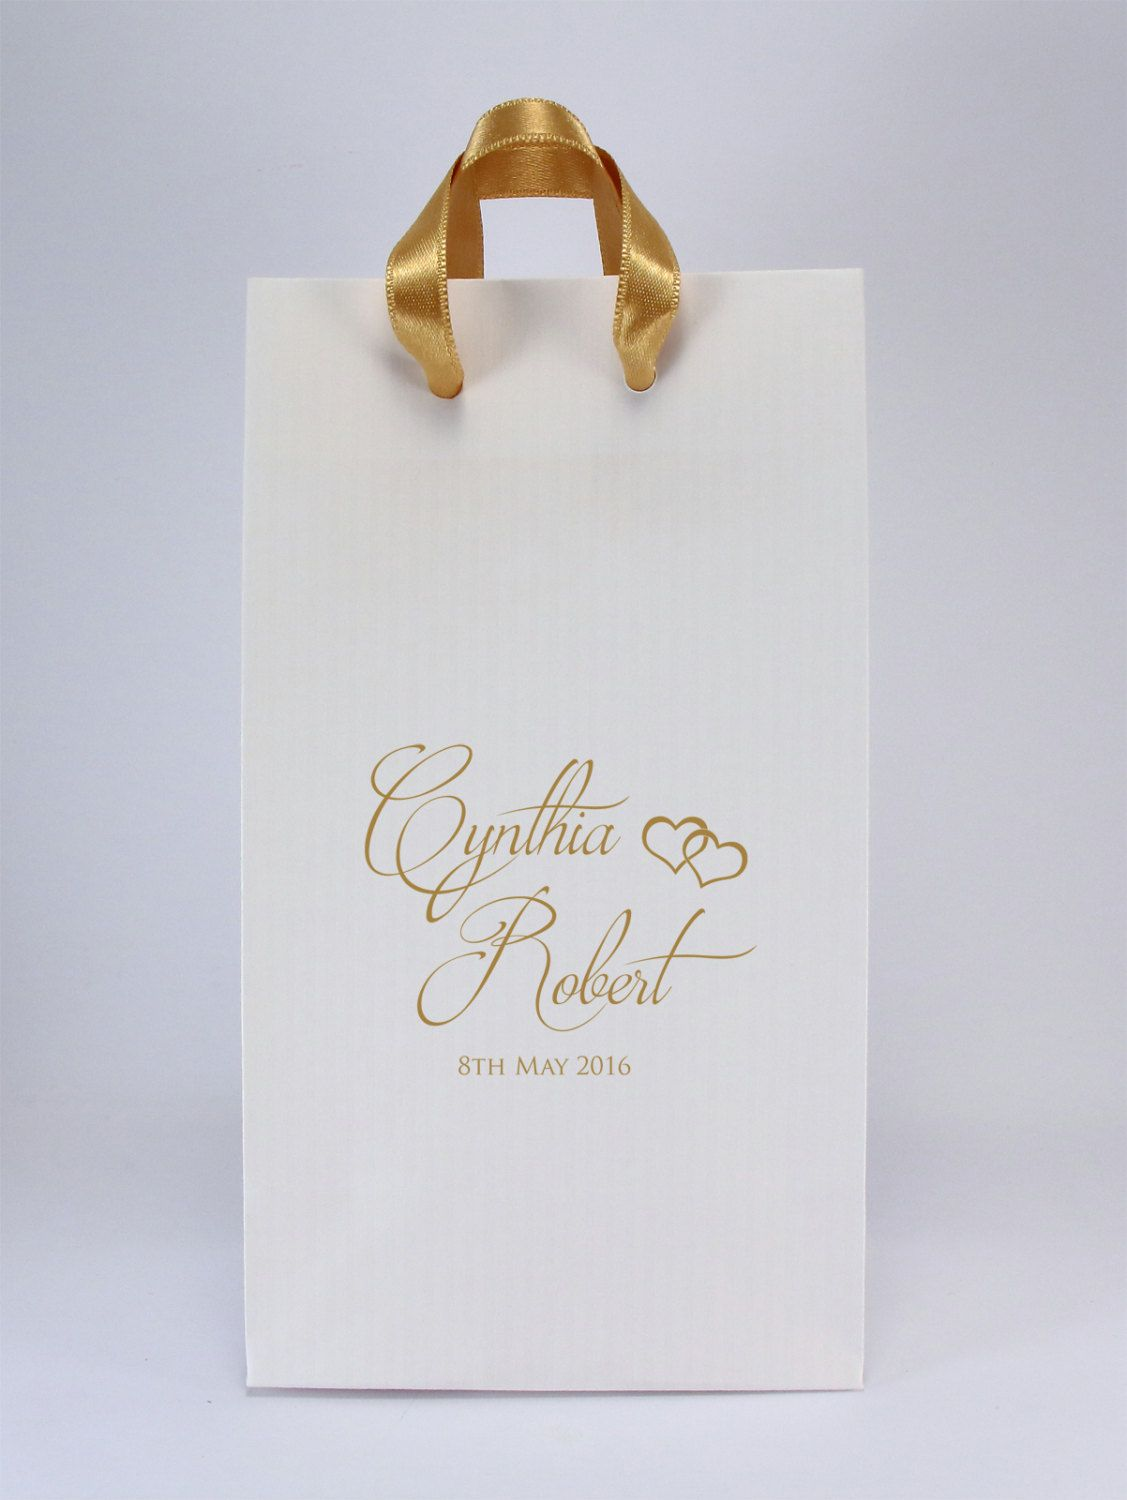 100 Wedding Favor Bags with Handles - Personalized White Paper Gift ...